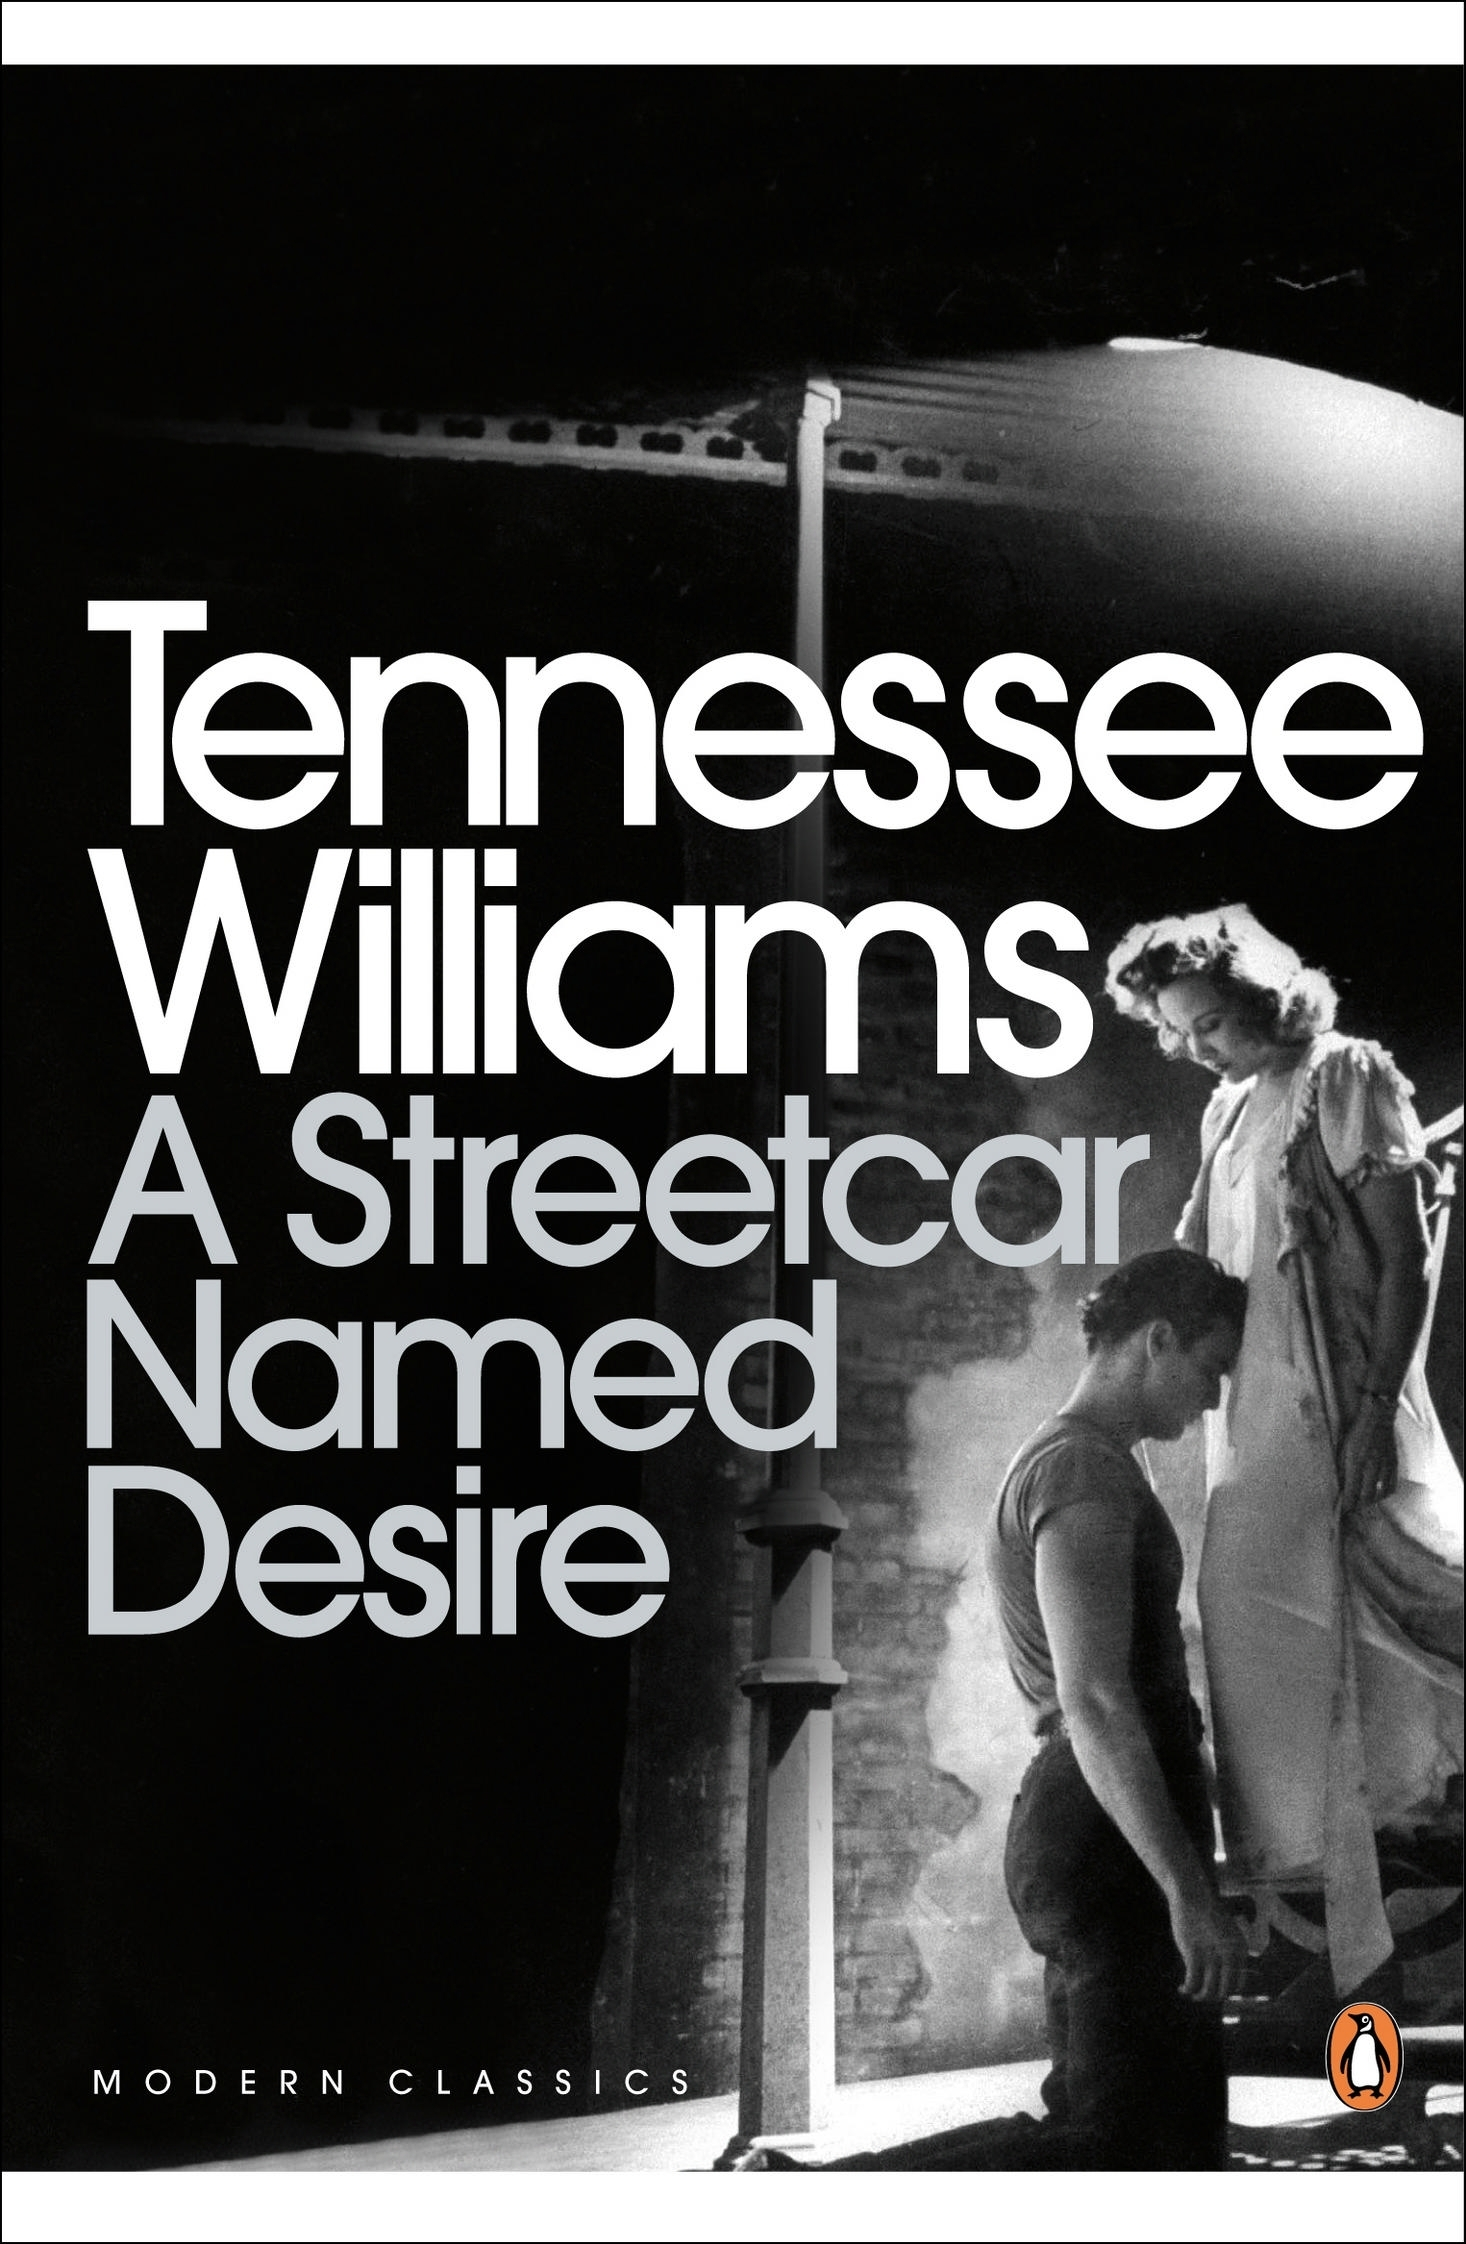 complexity of the main characters in the novel a streetcar named desire by tennessee williams Need help on characters in tennessee williams's a streetcar named desire check out our detailed character descriptions from the creators of sparknotes.